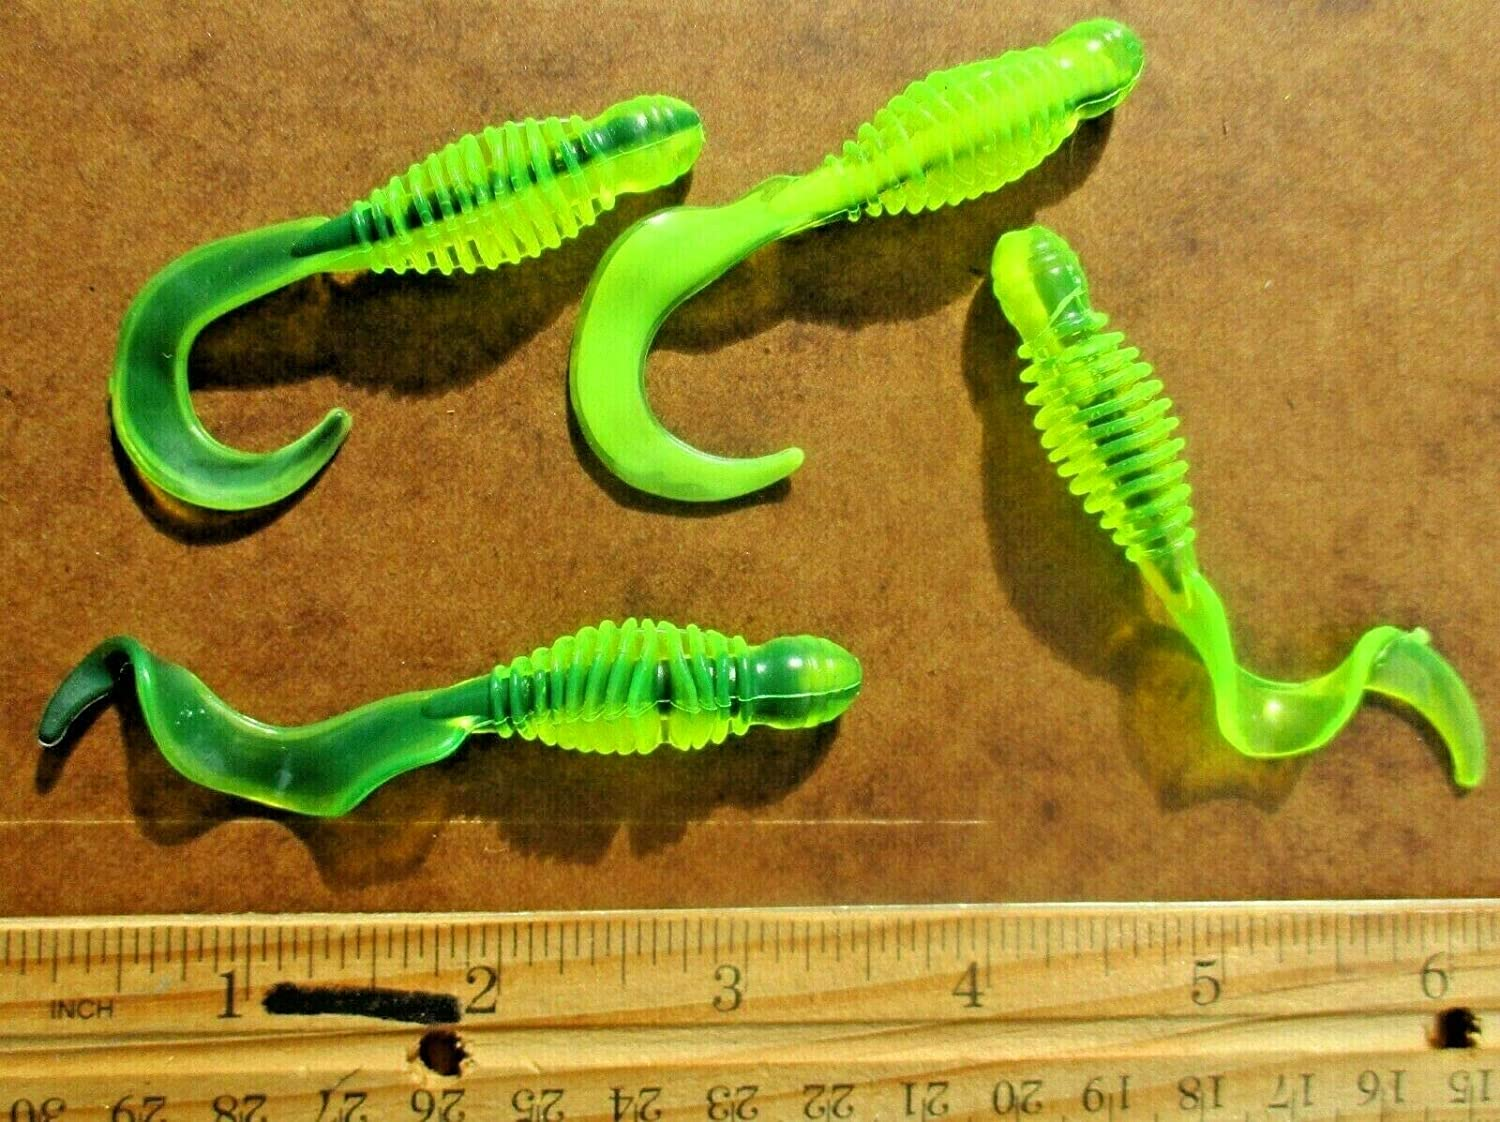 25ct Chartreuse CORESHOT Mix Curly Bass Ring Fishing Tail GRUBS OFFer Translated